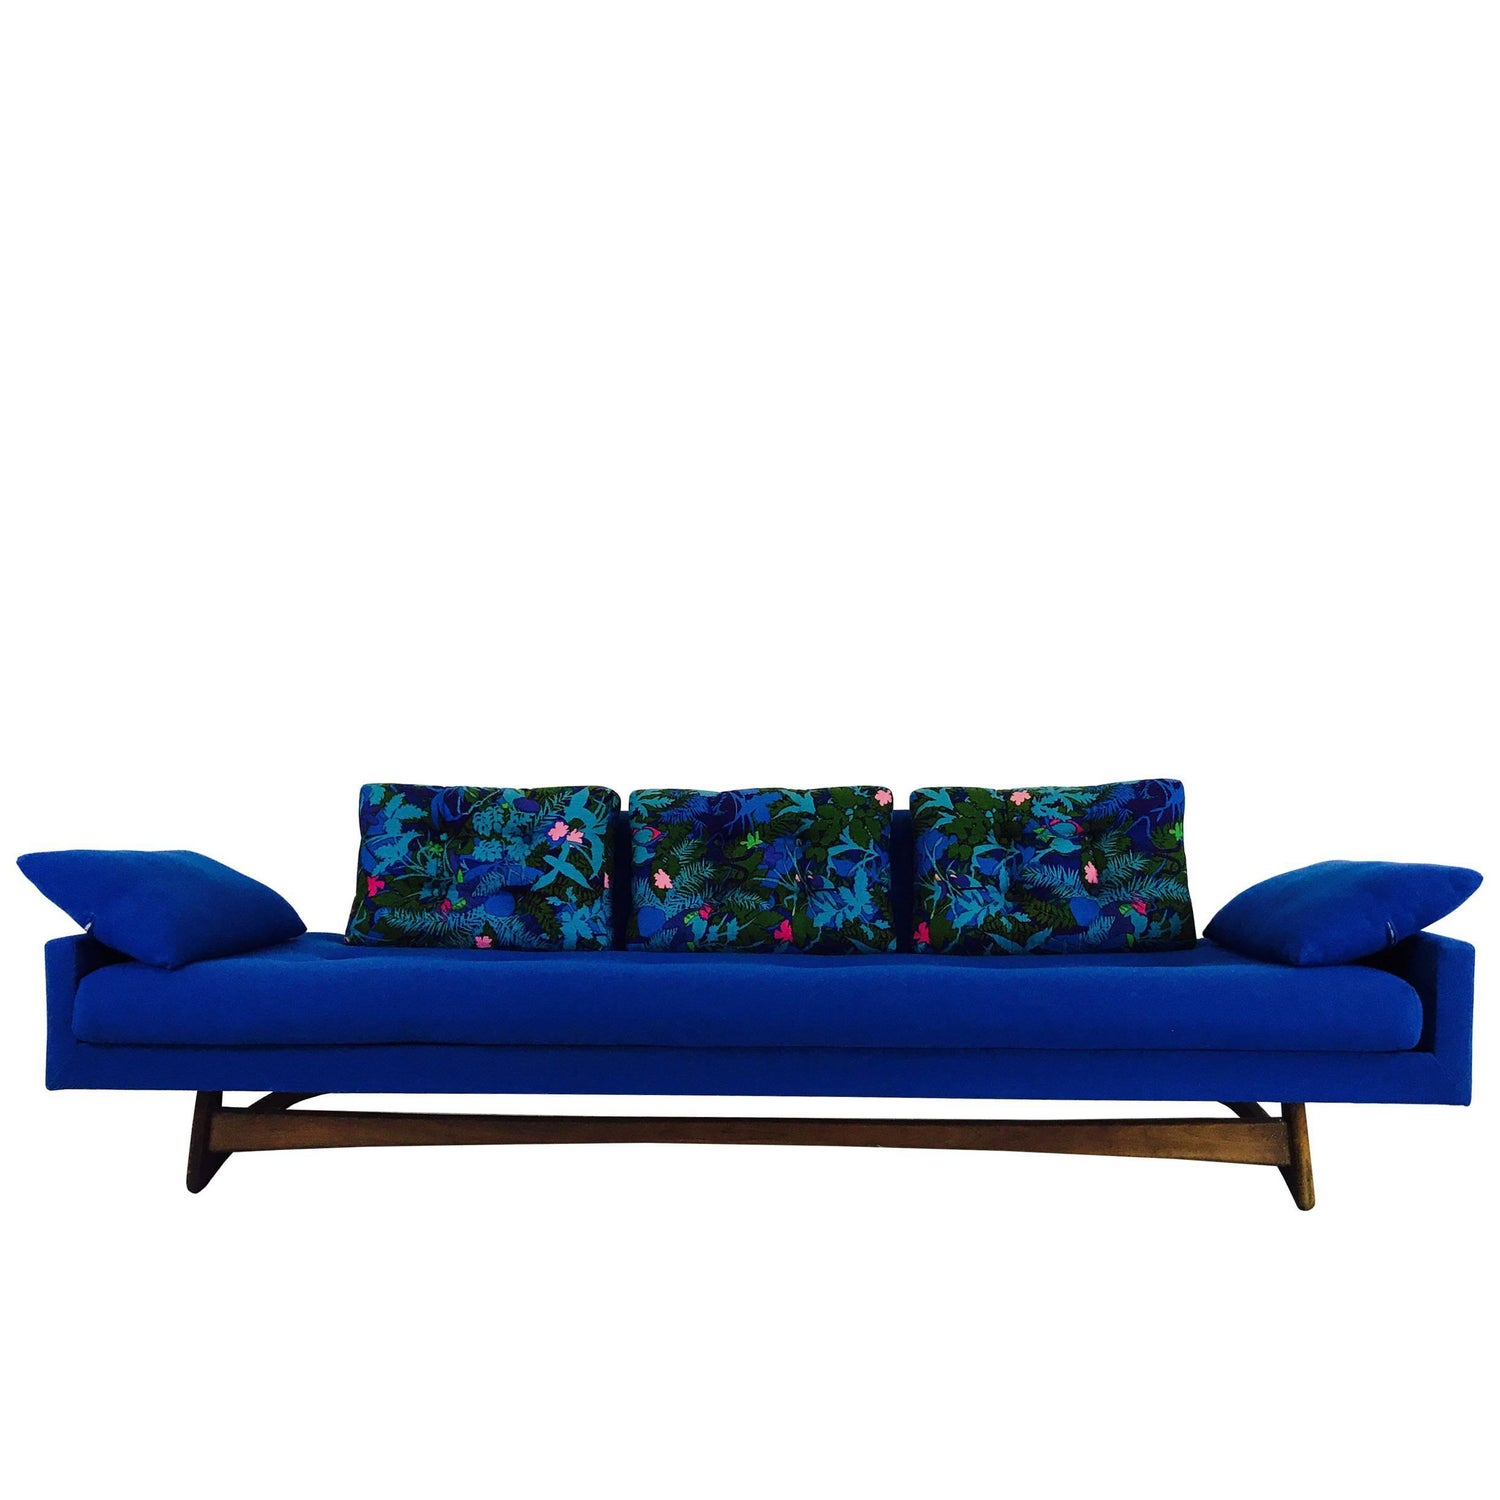 Adrian Pearsall Gondola Sofa for Craft Associates Model 2408 S For